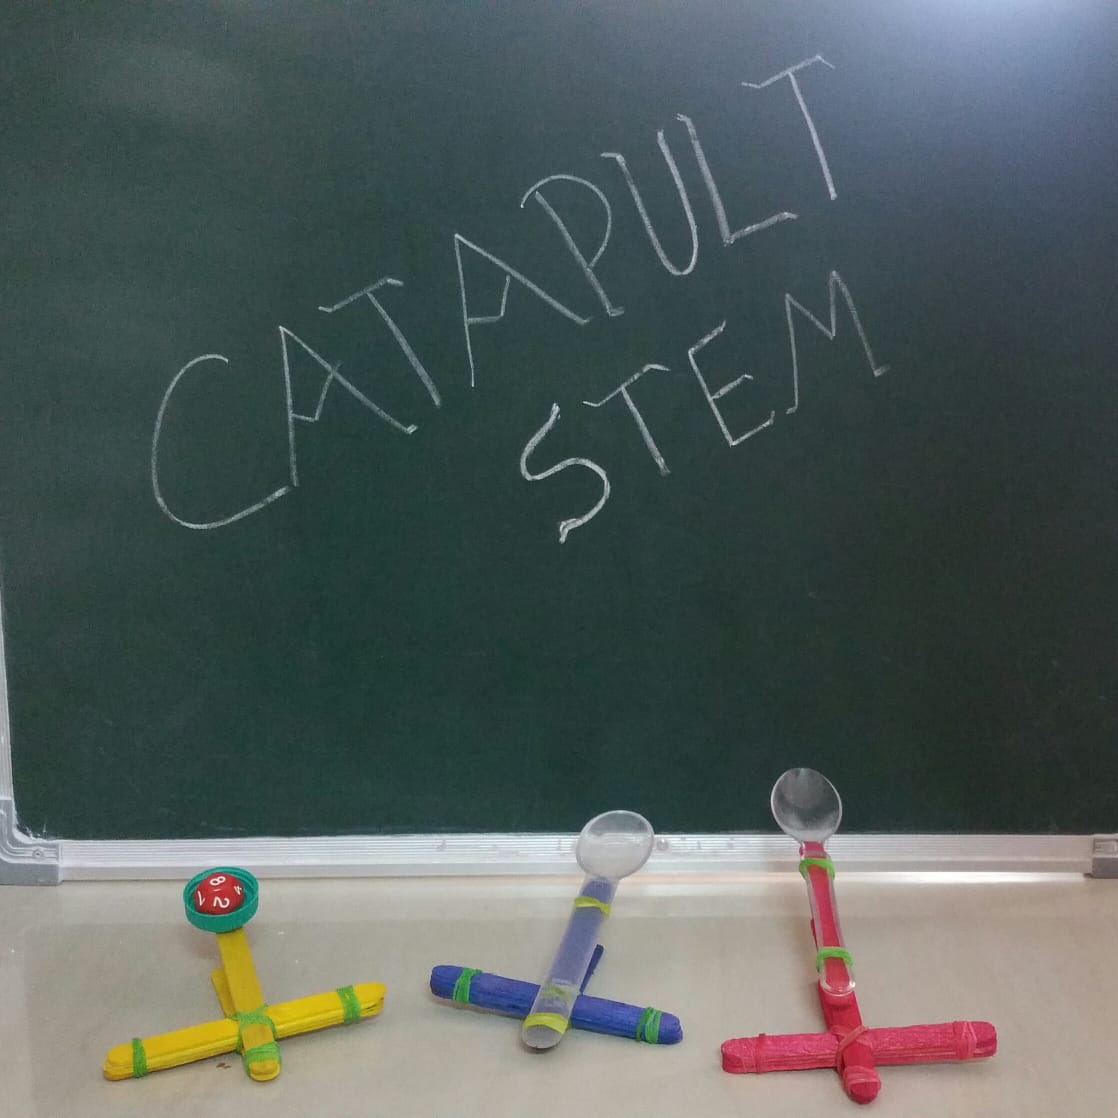 Catapult STEM - fun make your own catapult kids activity that combines science, engineering and math principles with play.